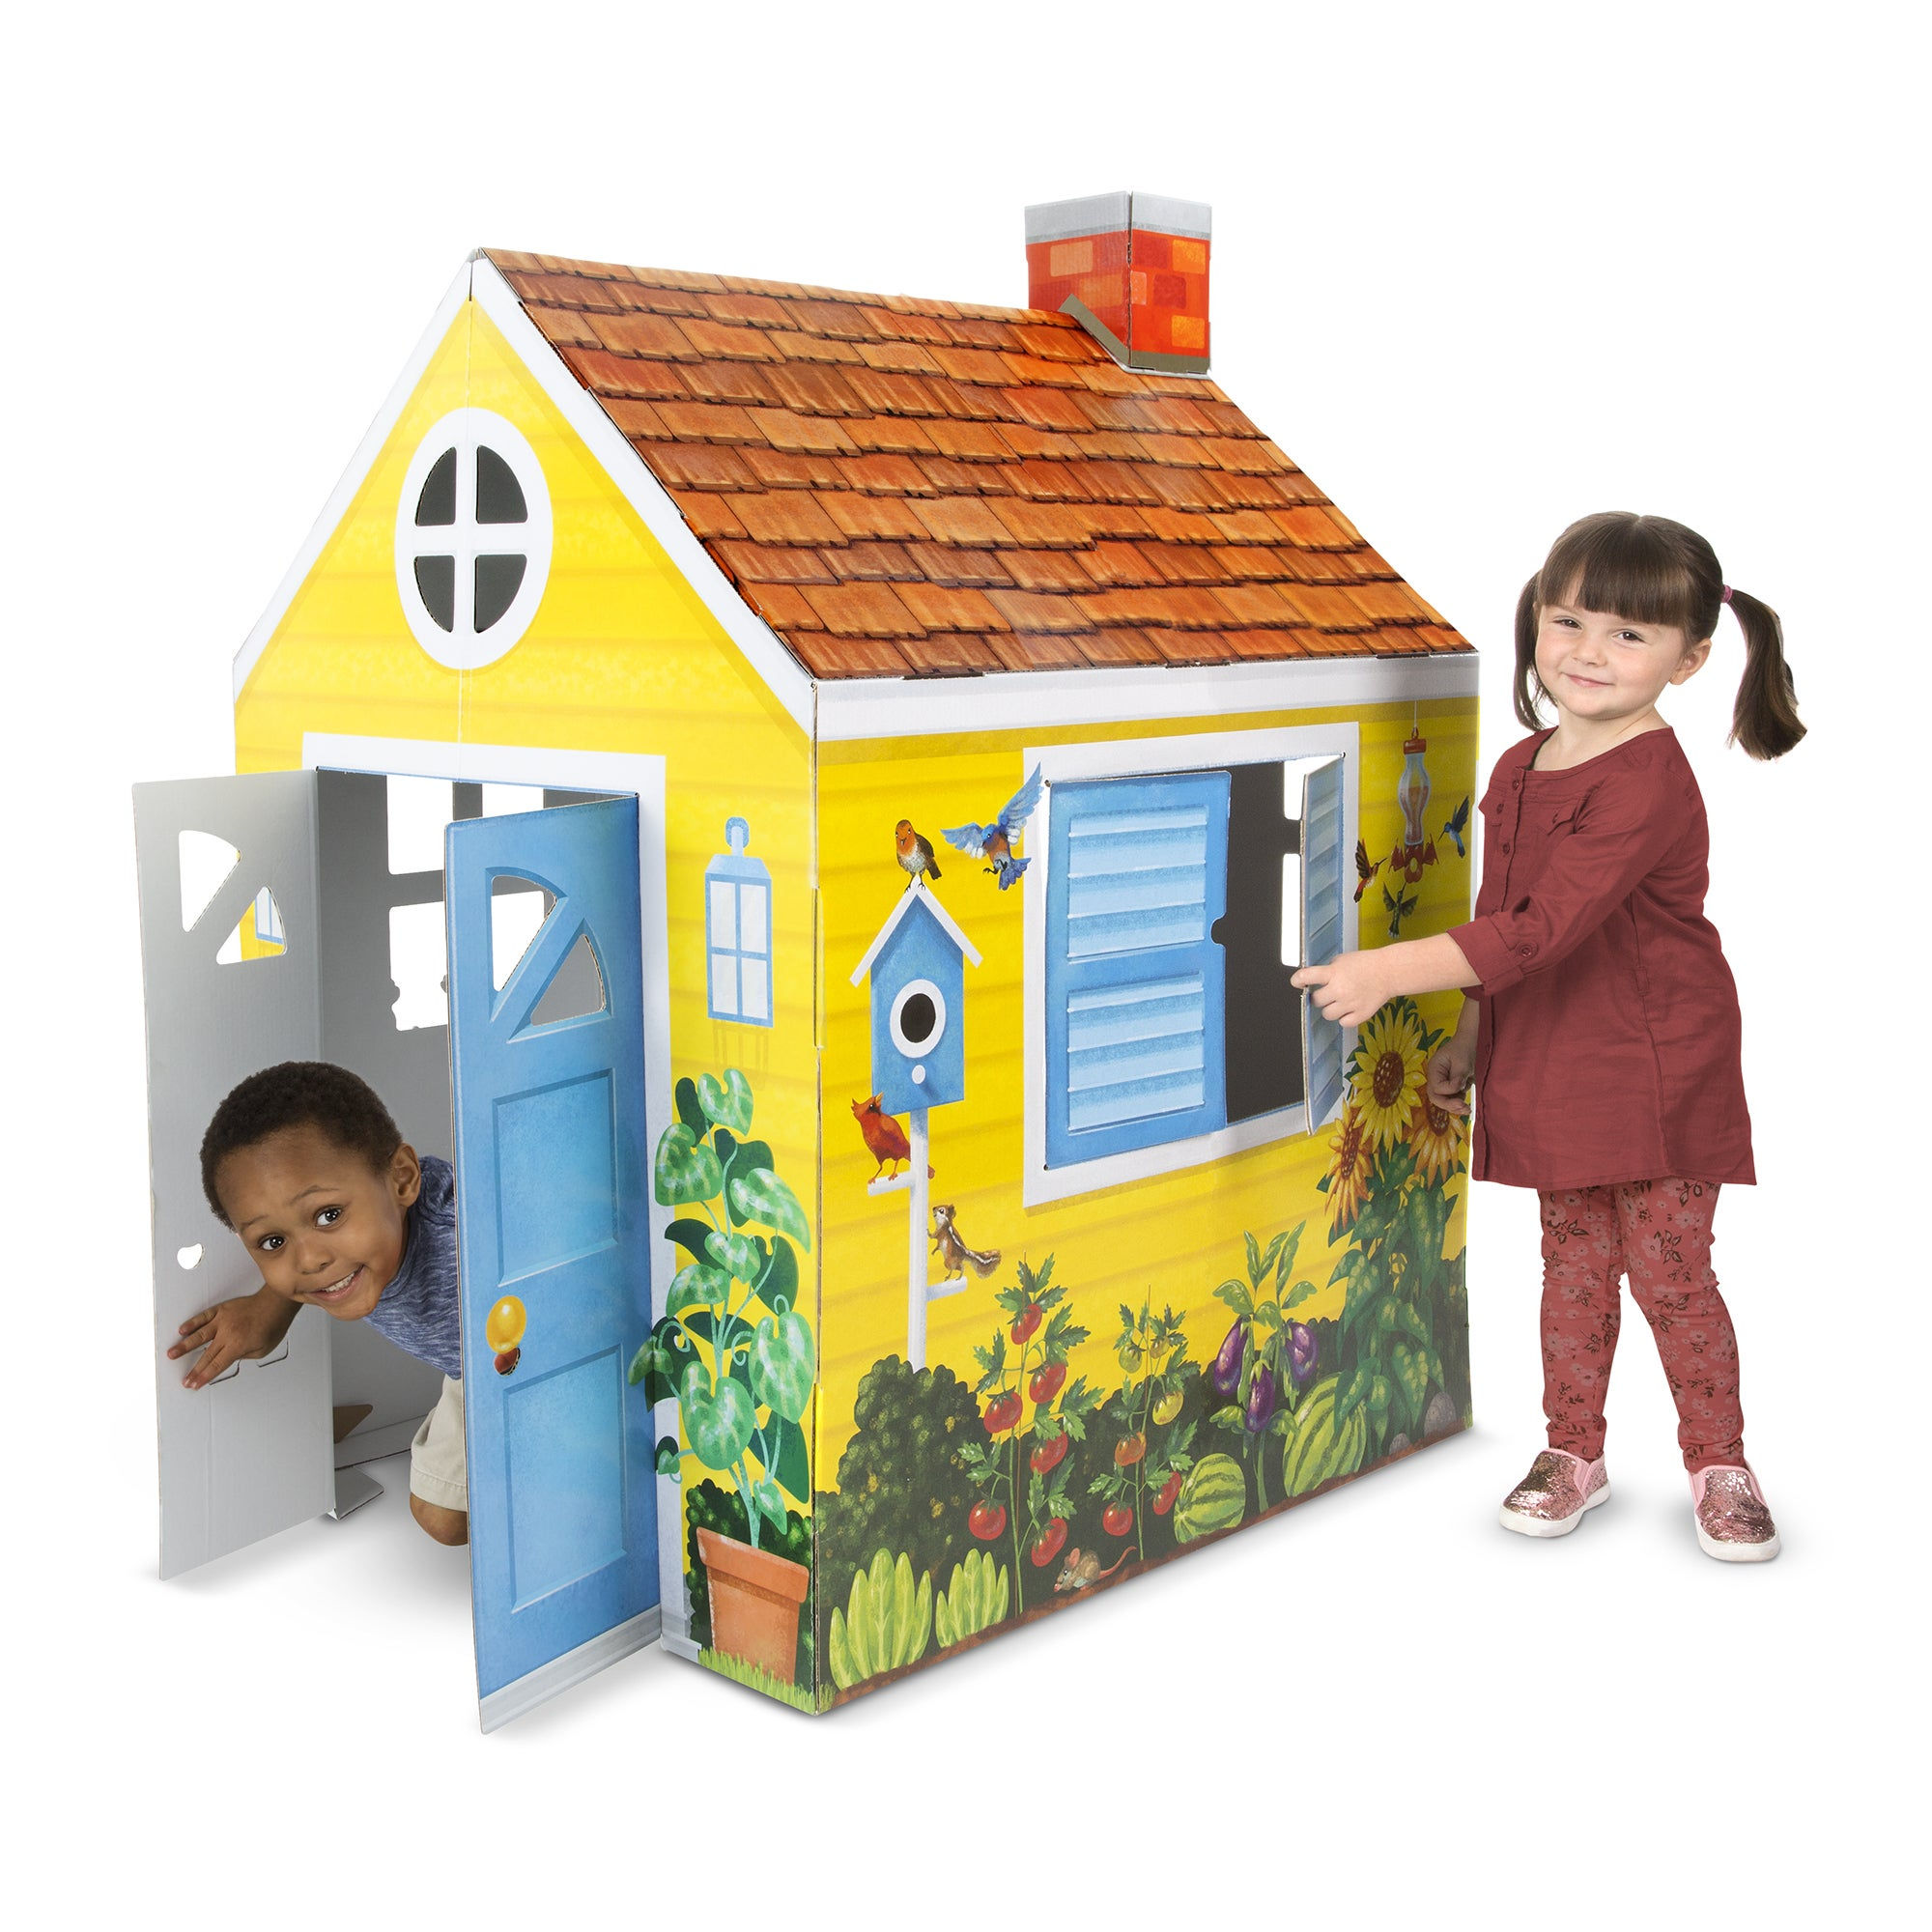 Melissa Doug Cottage Cardboard Structure